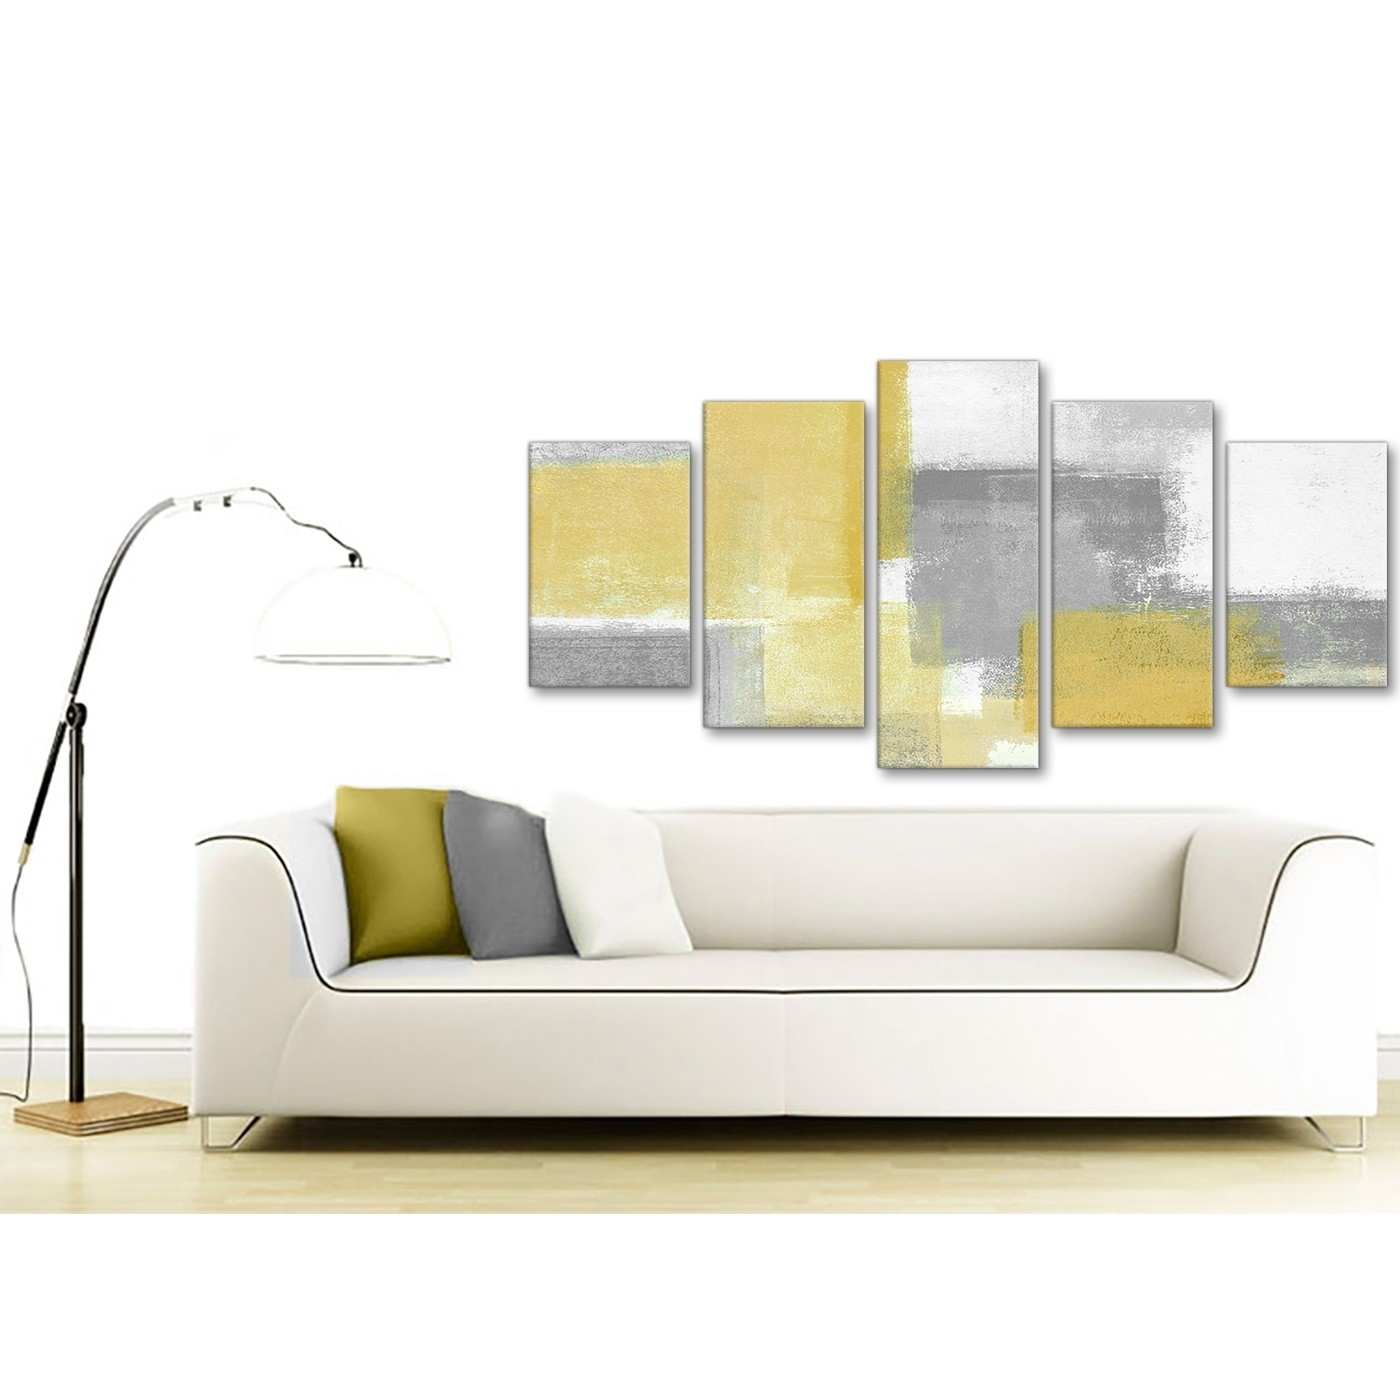 5 Piece Mustard Yellow Grey Abstract Living Room Canvas Wall Art for Recent Yellow And Grey Abstract Wall Art